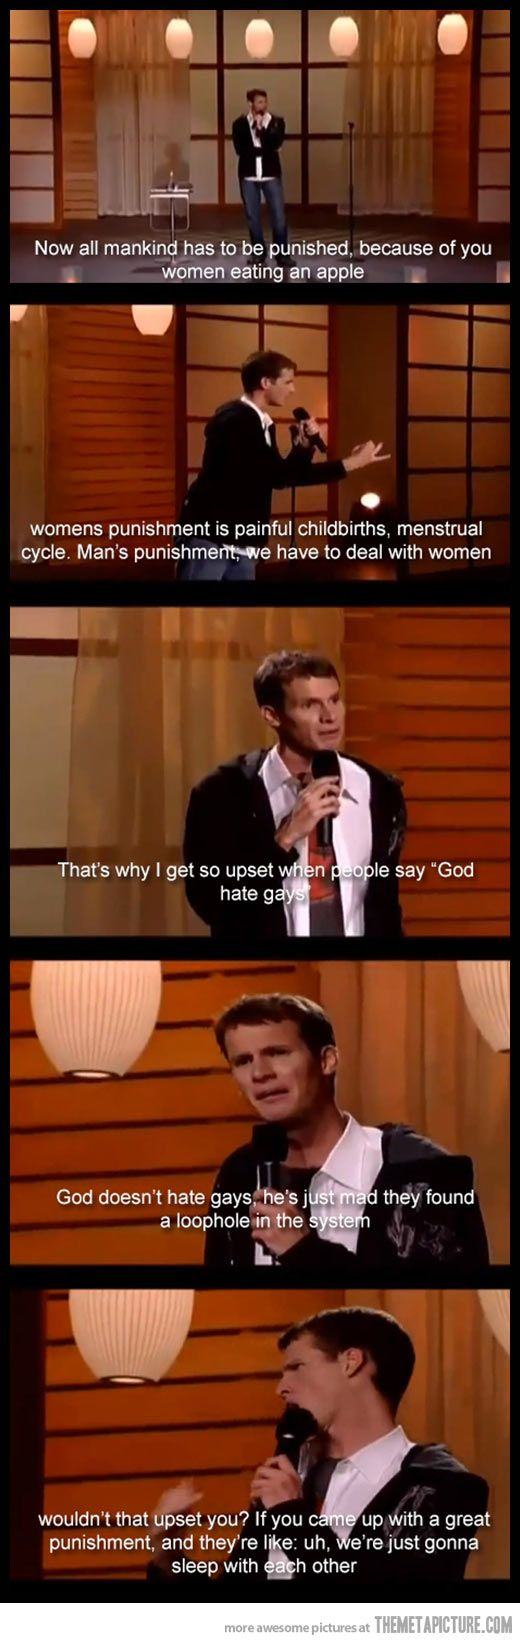 funny-God-gay-comedy: Gays found a loophole in the system